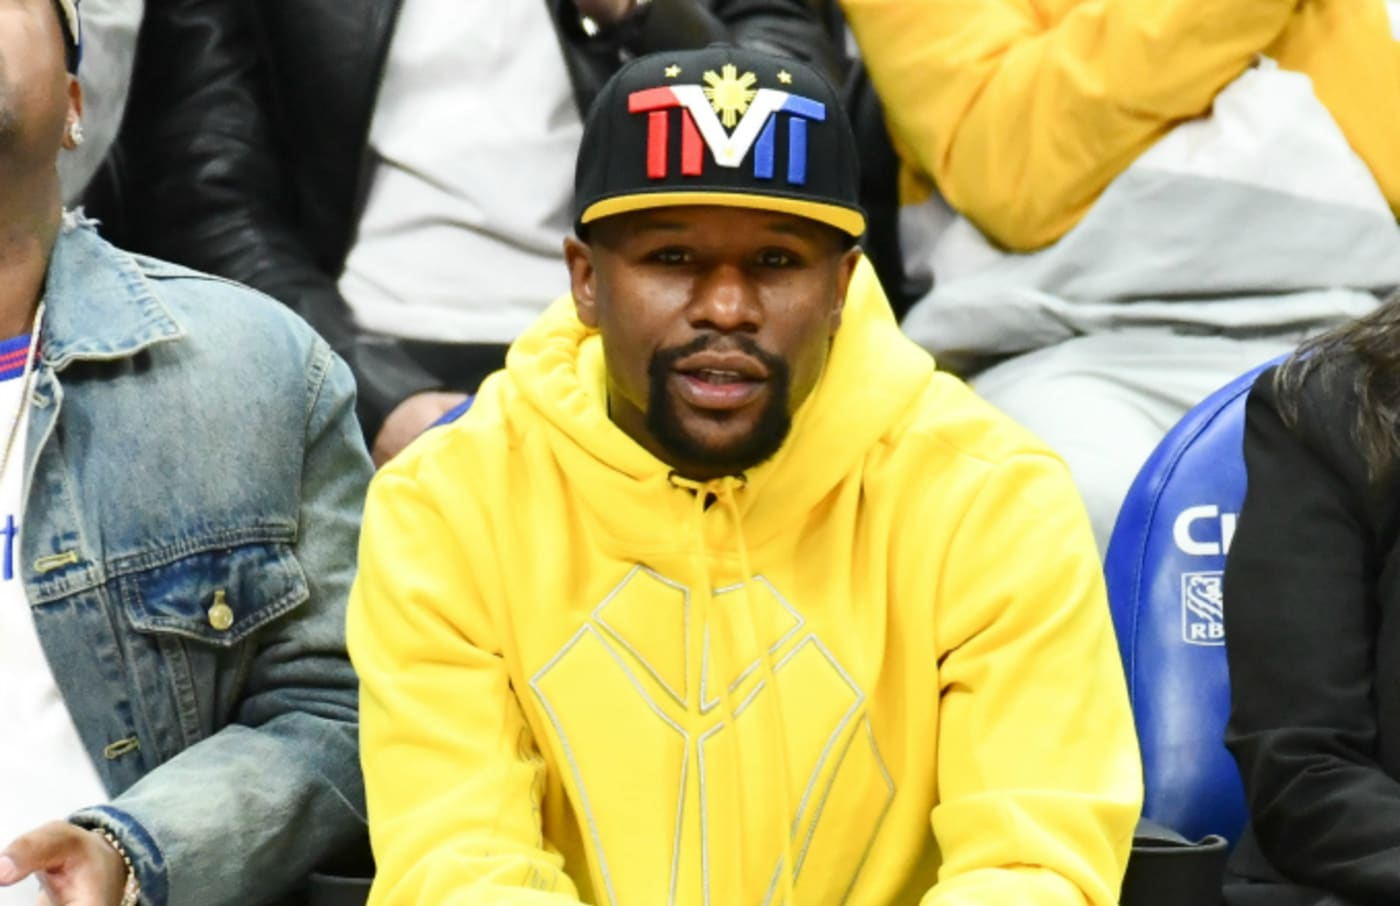 Floyd Mayweather Jr. attends a basketball game